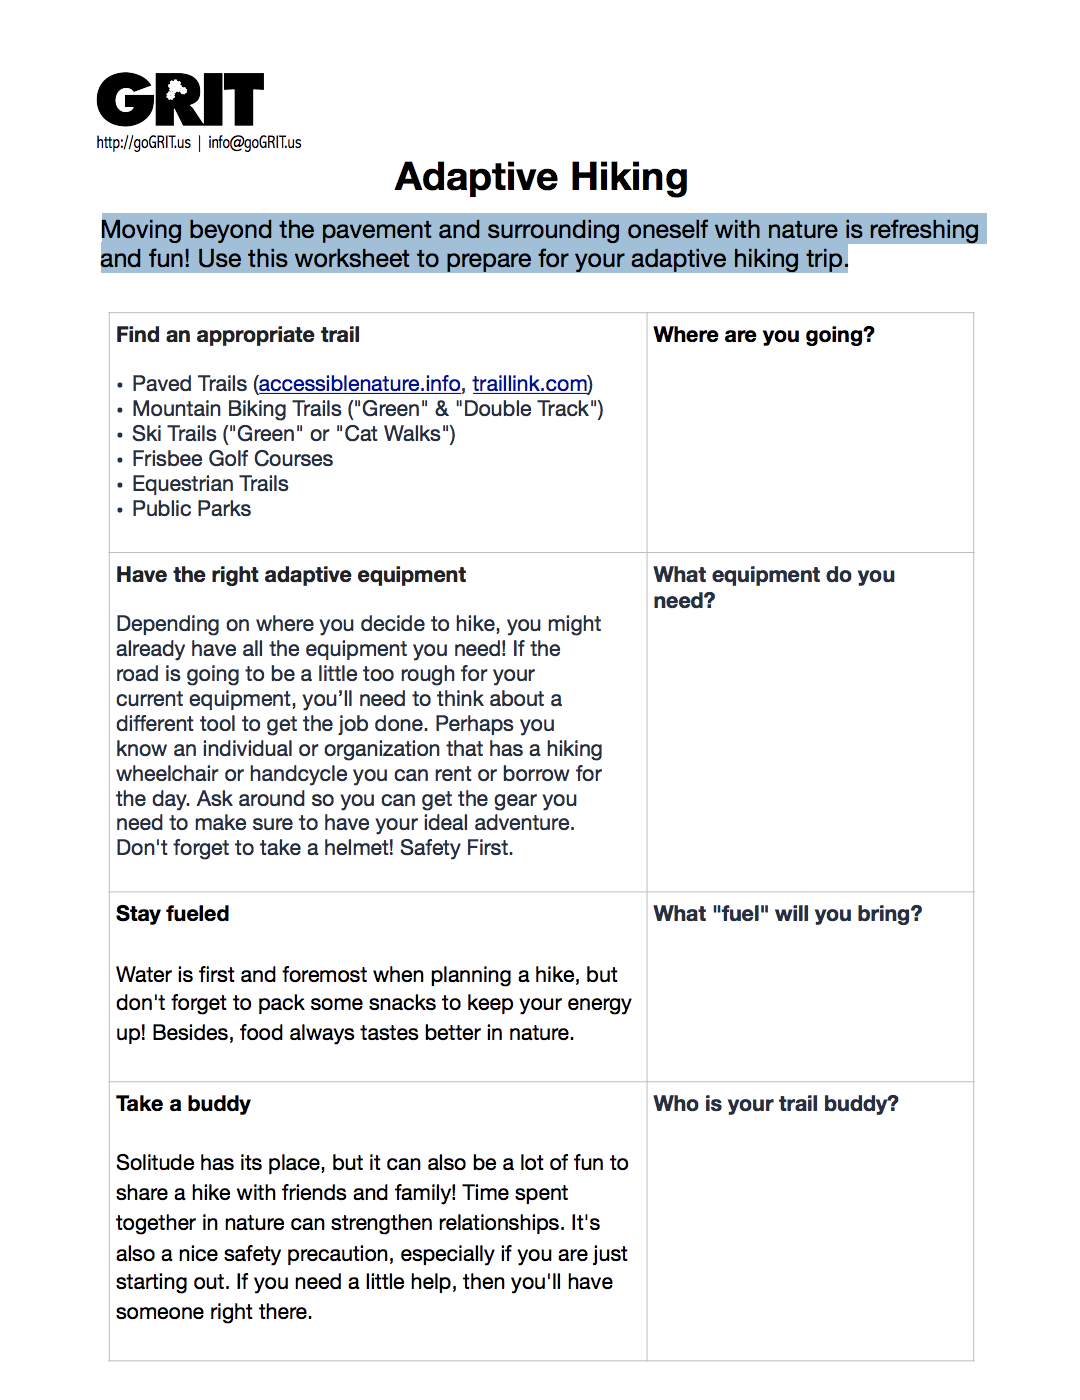 GRIT Adaptive Hiking Checklist